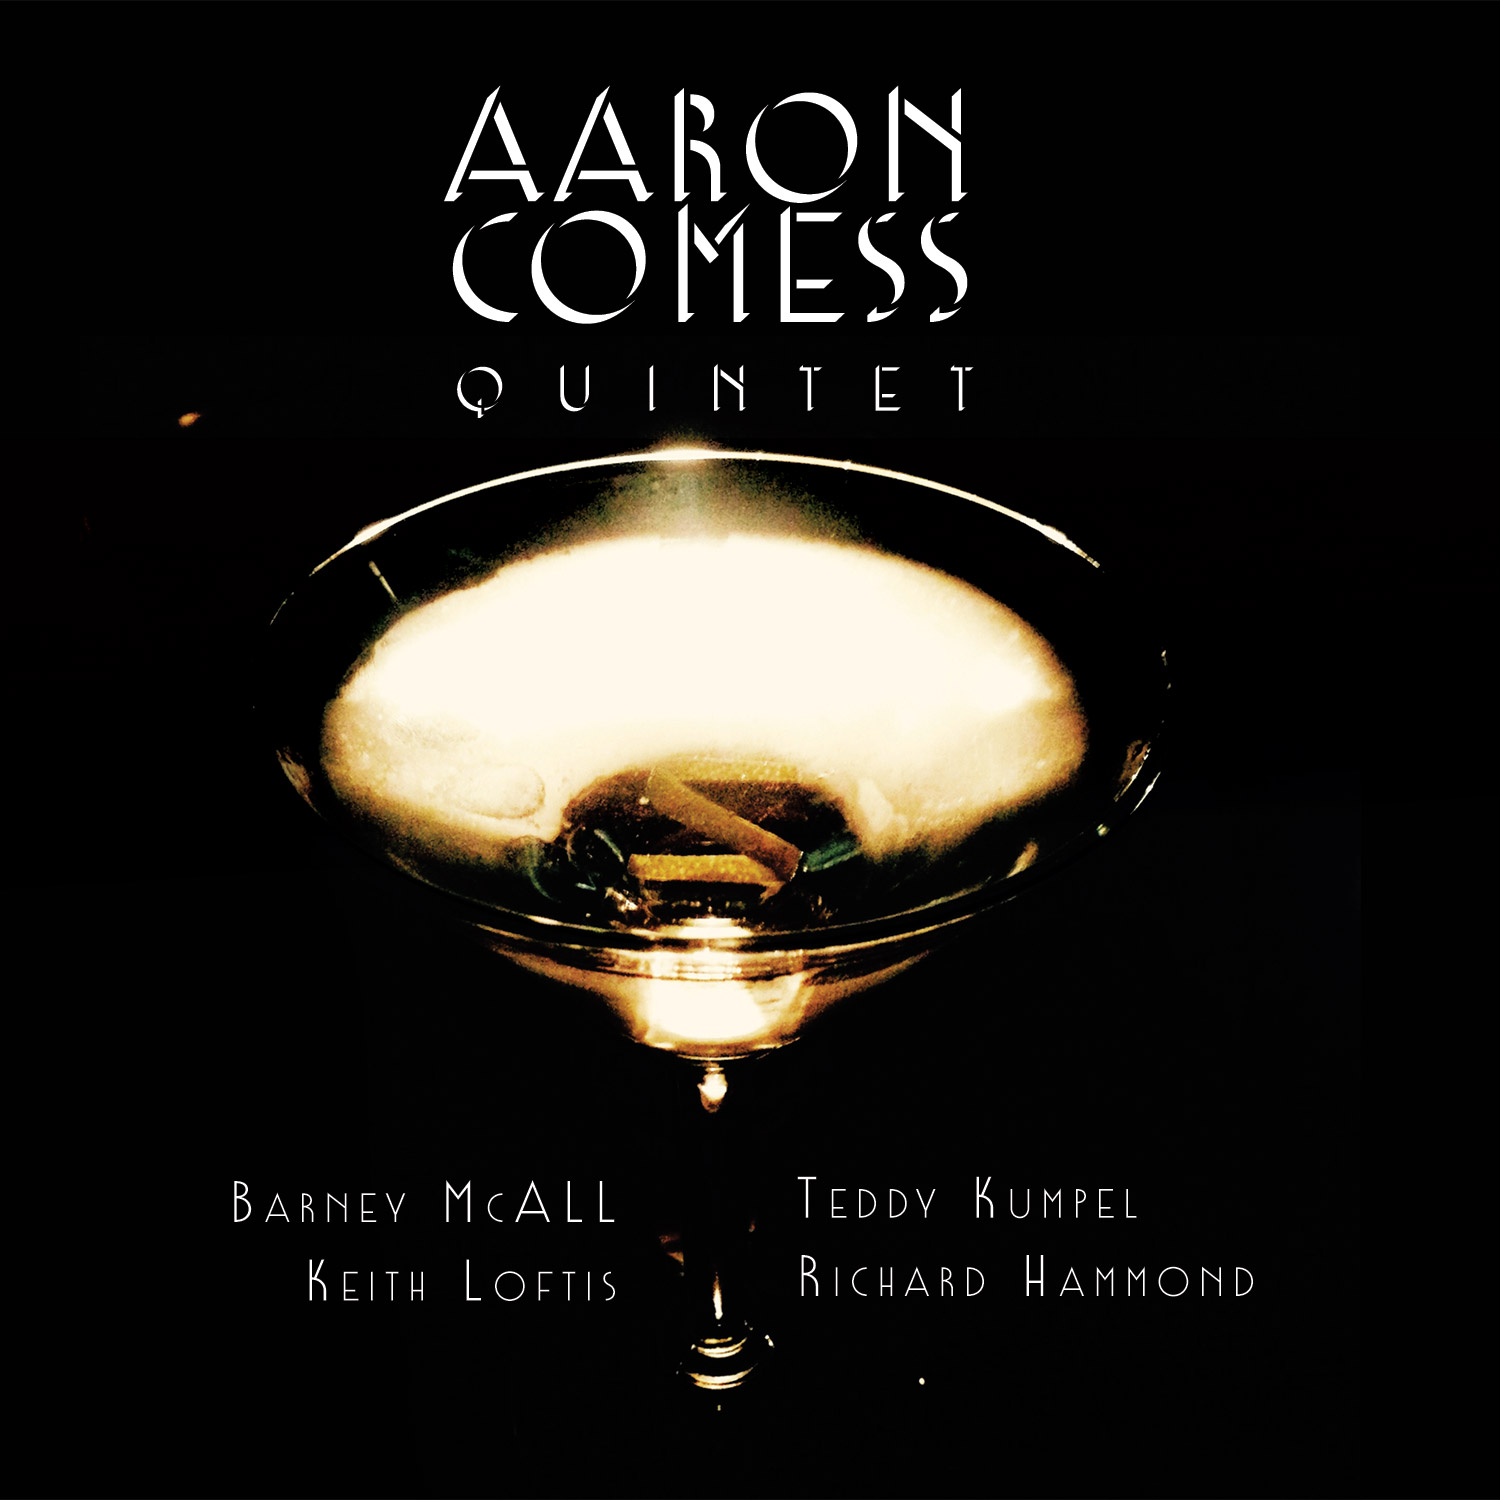 Jazz Weekly, Jazziz & The Wall Street Journal celebrate Aaron Comess Quintet